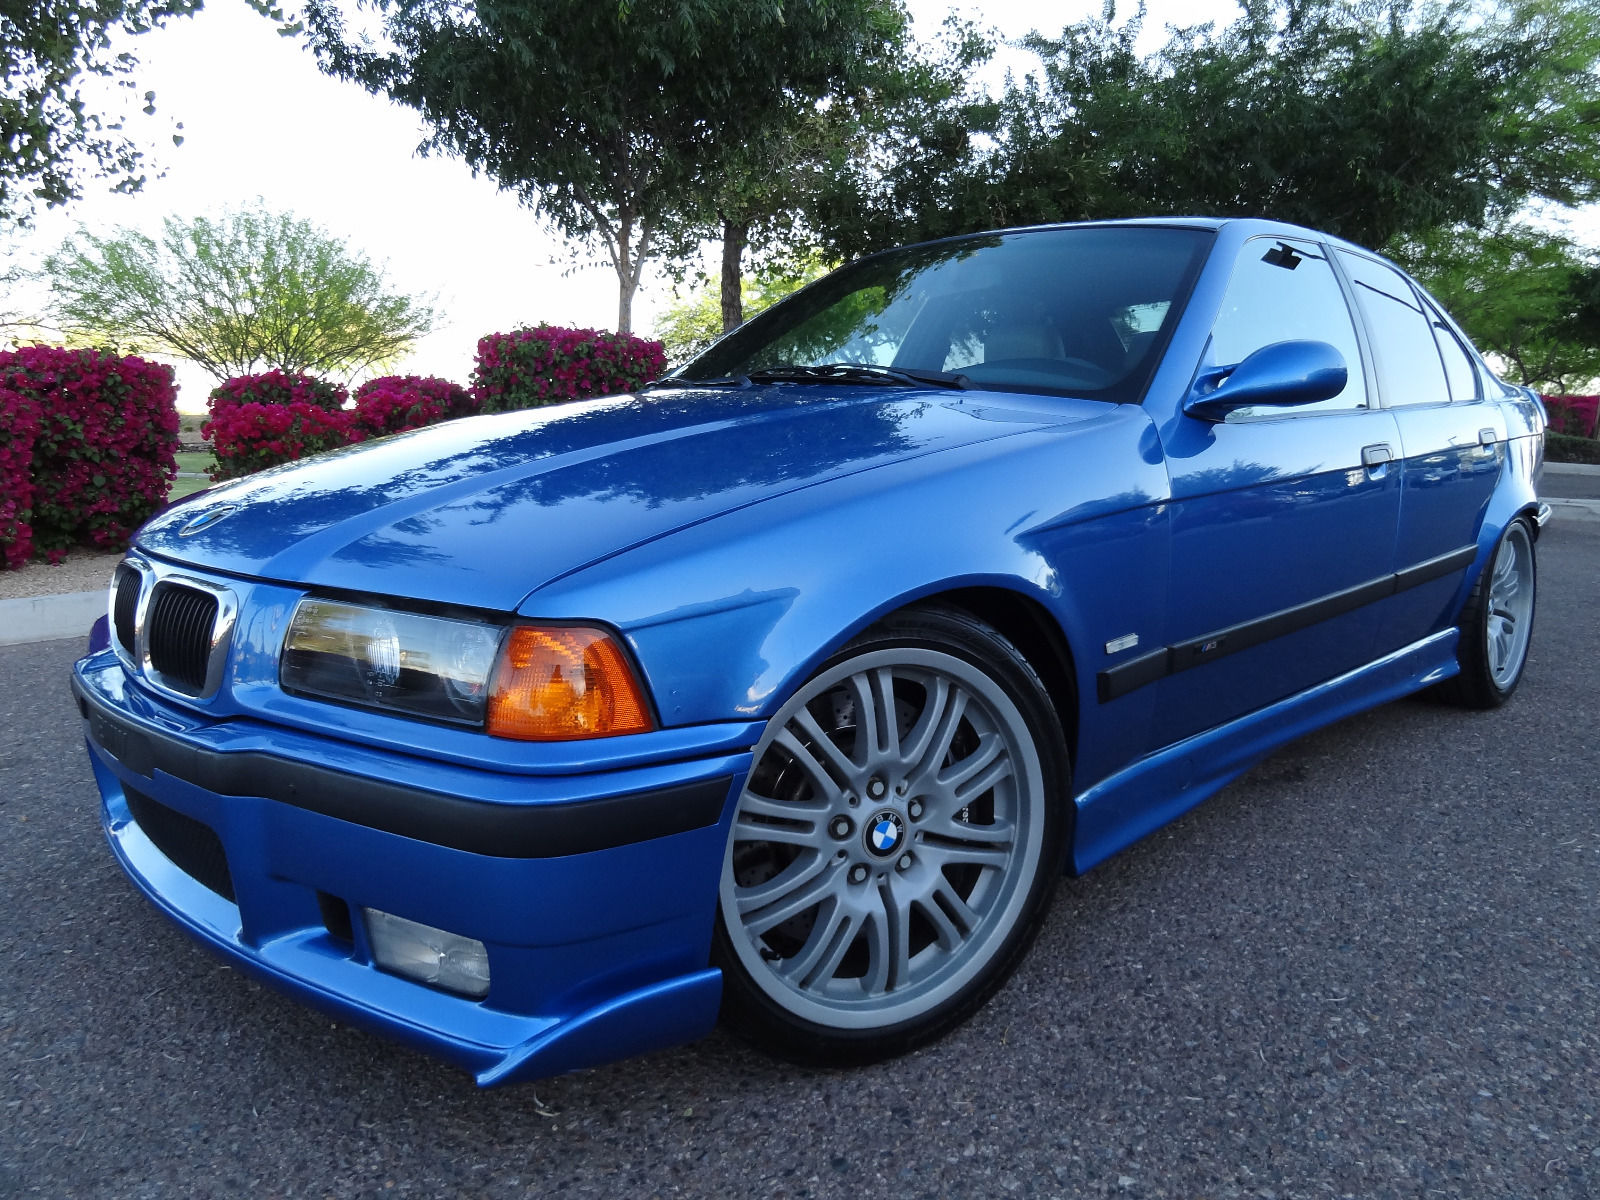 1998 bmw m3 sedan 3 6 widebody 6 speed german cars for bmw 330ci manual transmission for sale bmw 330ci convertible manual for sale